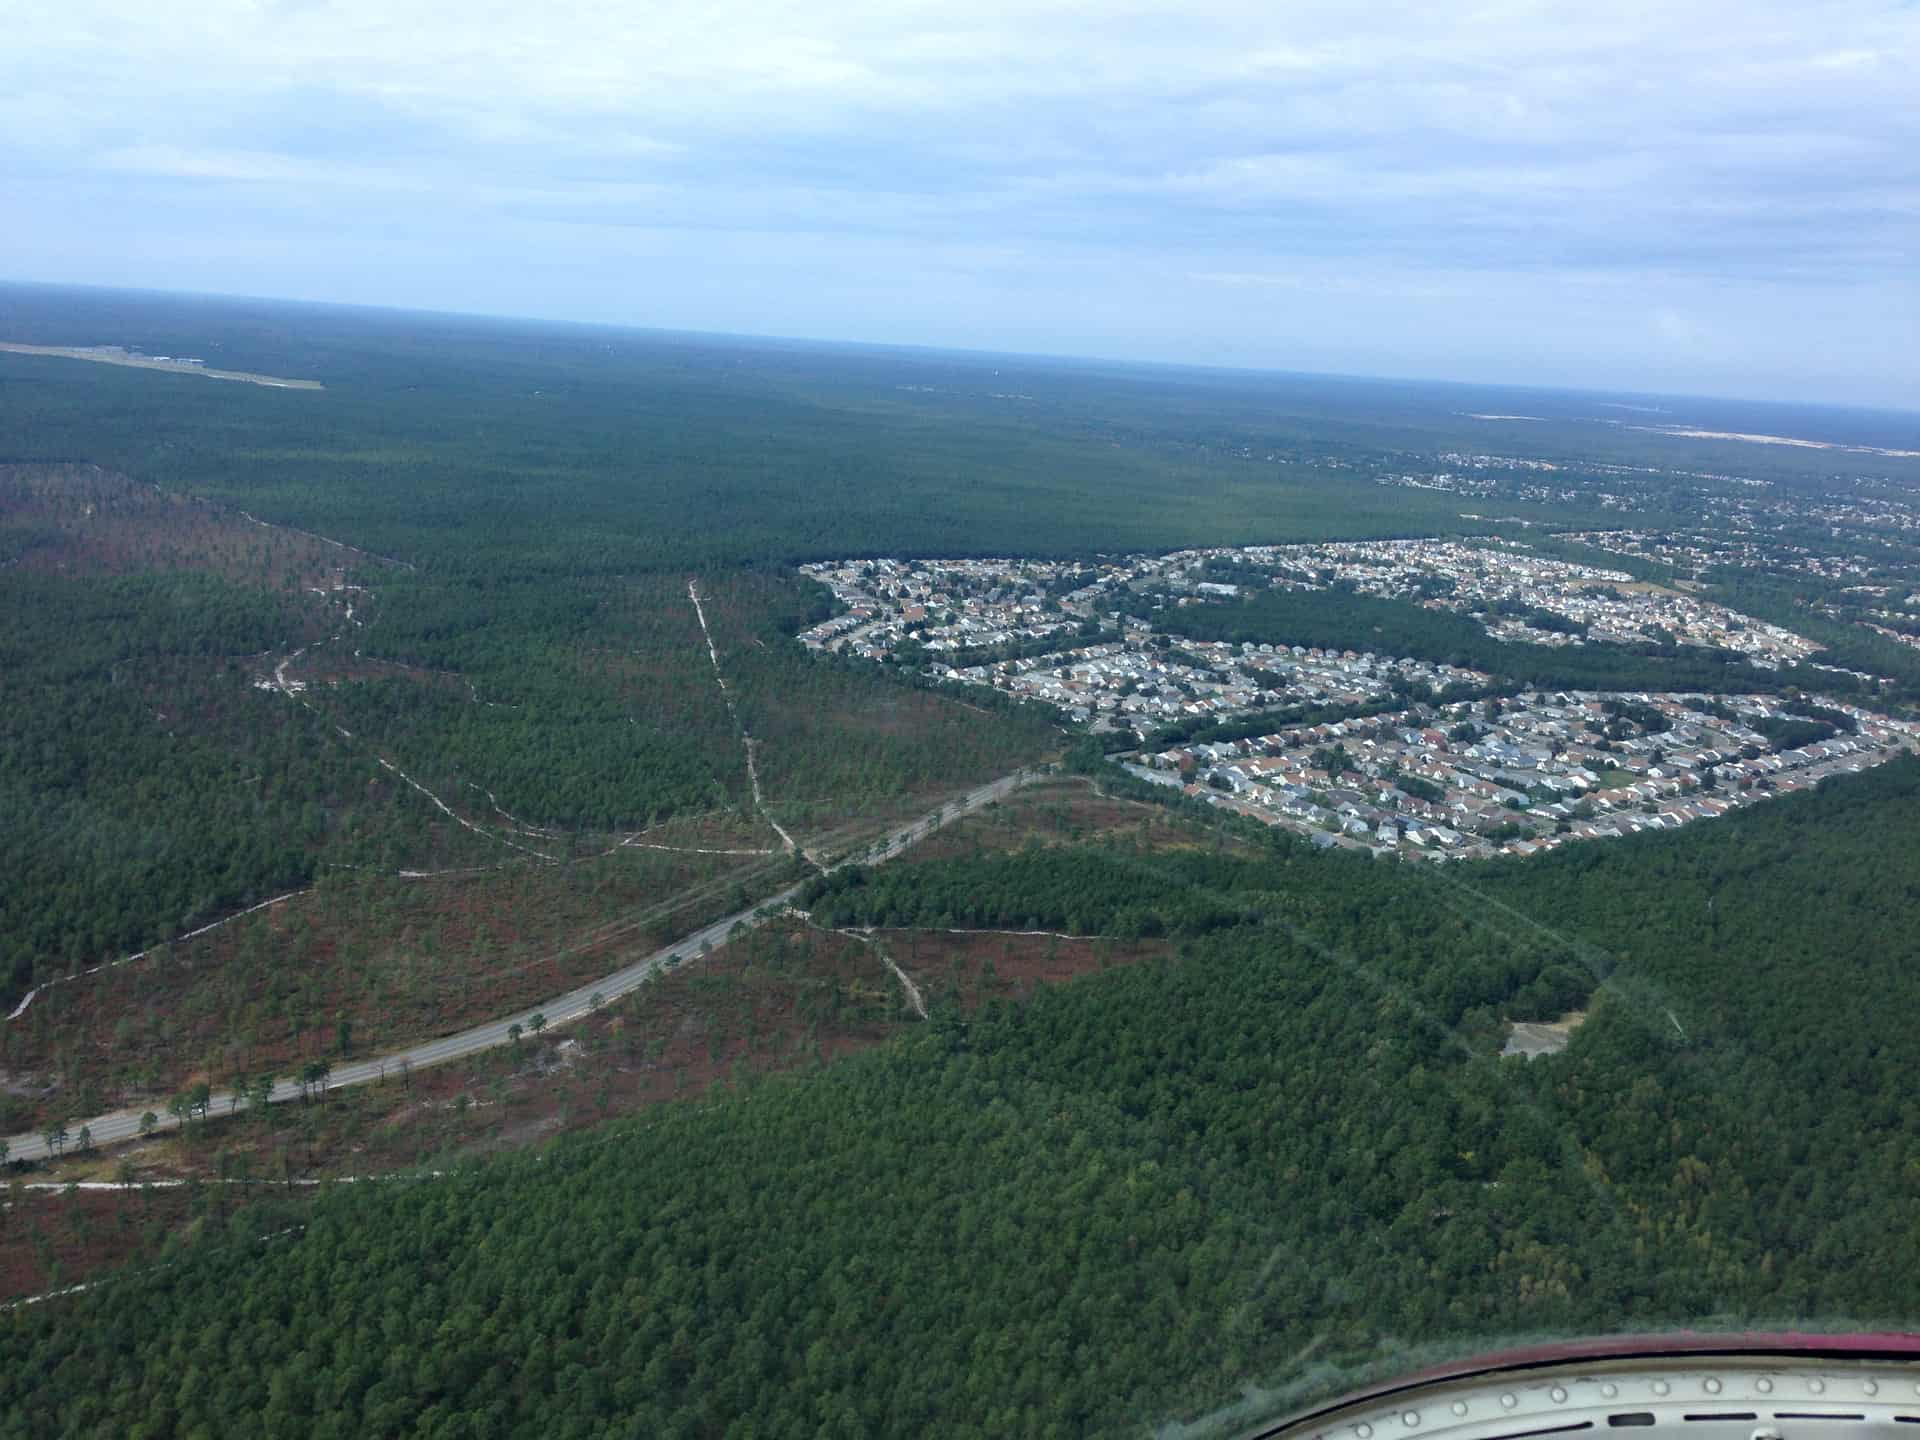 Aerial view of Pine Barrens